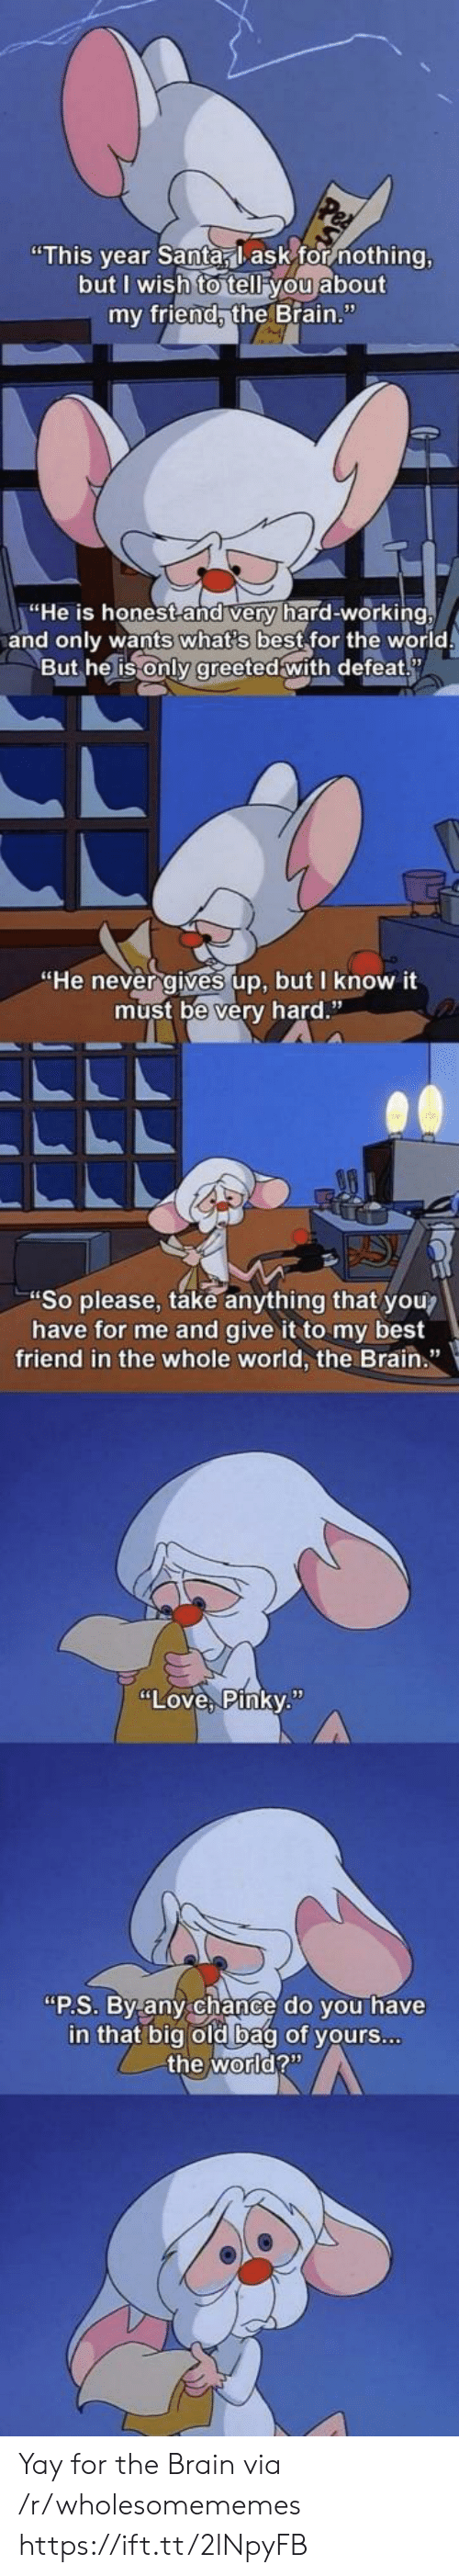 """the brain: """"This year Santa, lask for nothing,  but I wish to tell you about  my friend, the Brain.""""  """"He is honest and very hard-working,  and only wants what's best for the world  But he is only greeted with defeat  """"He never gives up, but I know it  must be very hard.""""  """"So please, take anything that you?  have for me and give it to my best  friend in the whole world, the Brain.""""  """"Love, Pinky.""""  """"P.S. By any chance do you have  in that big old bag of yours...  the world?"""" Yay for the Brain via /r/wholesomememes https://ift.tt/2lNpyFB"""